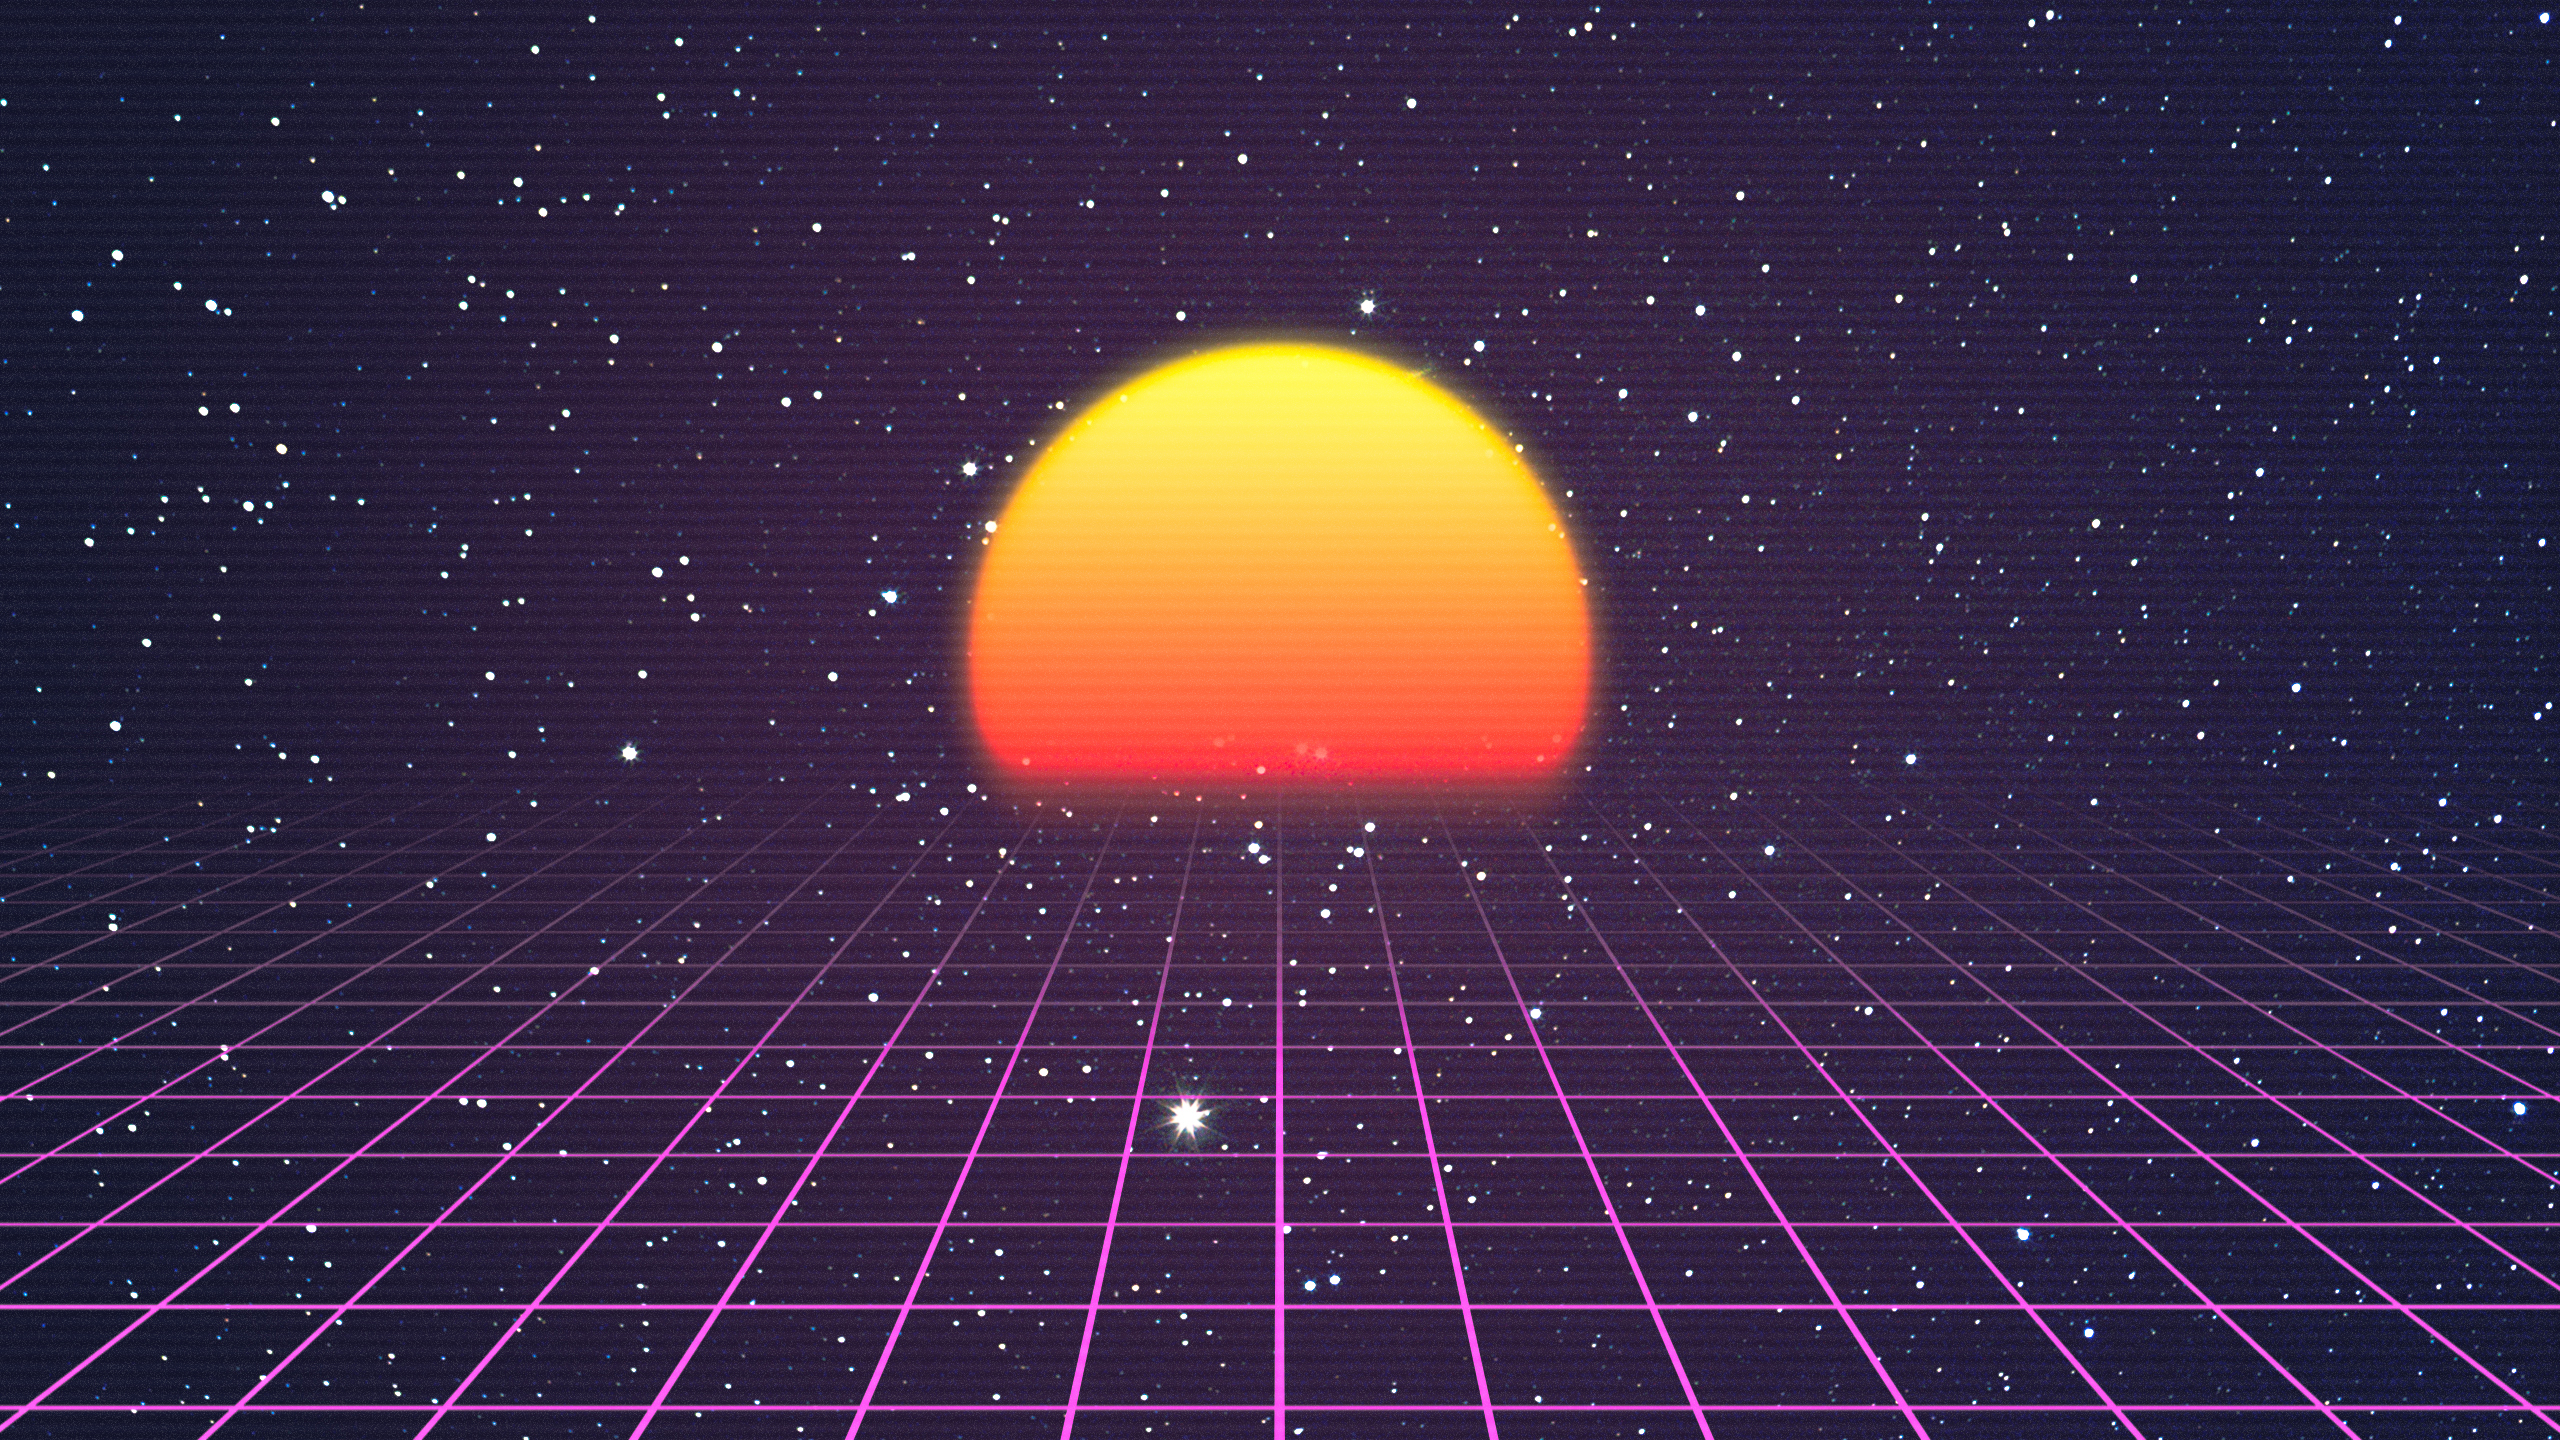 Retro Wave Full Hd Wallpaper And Background Image